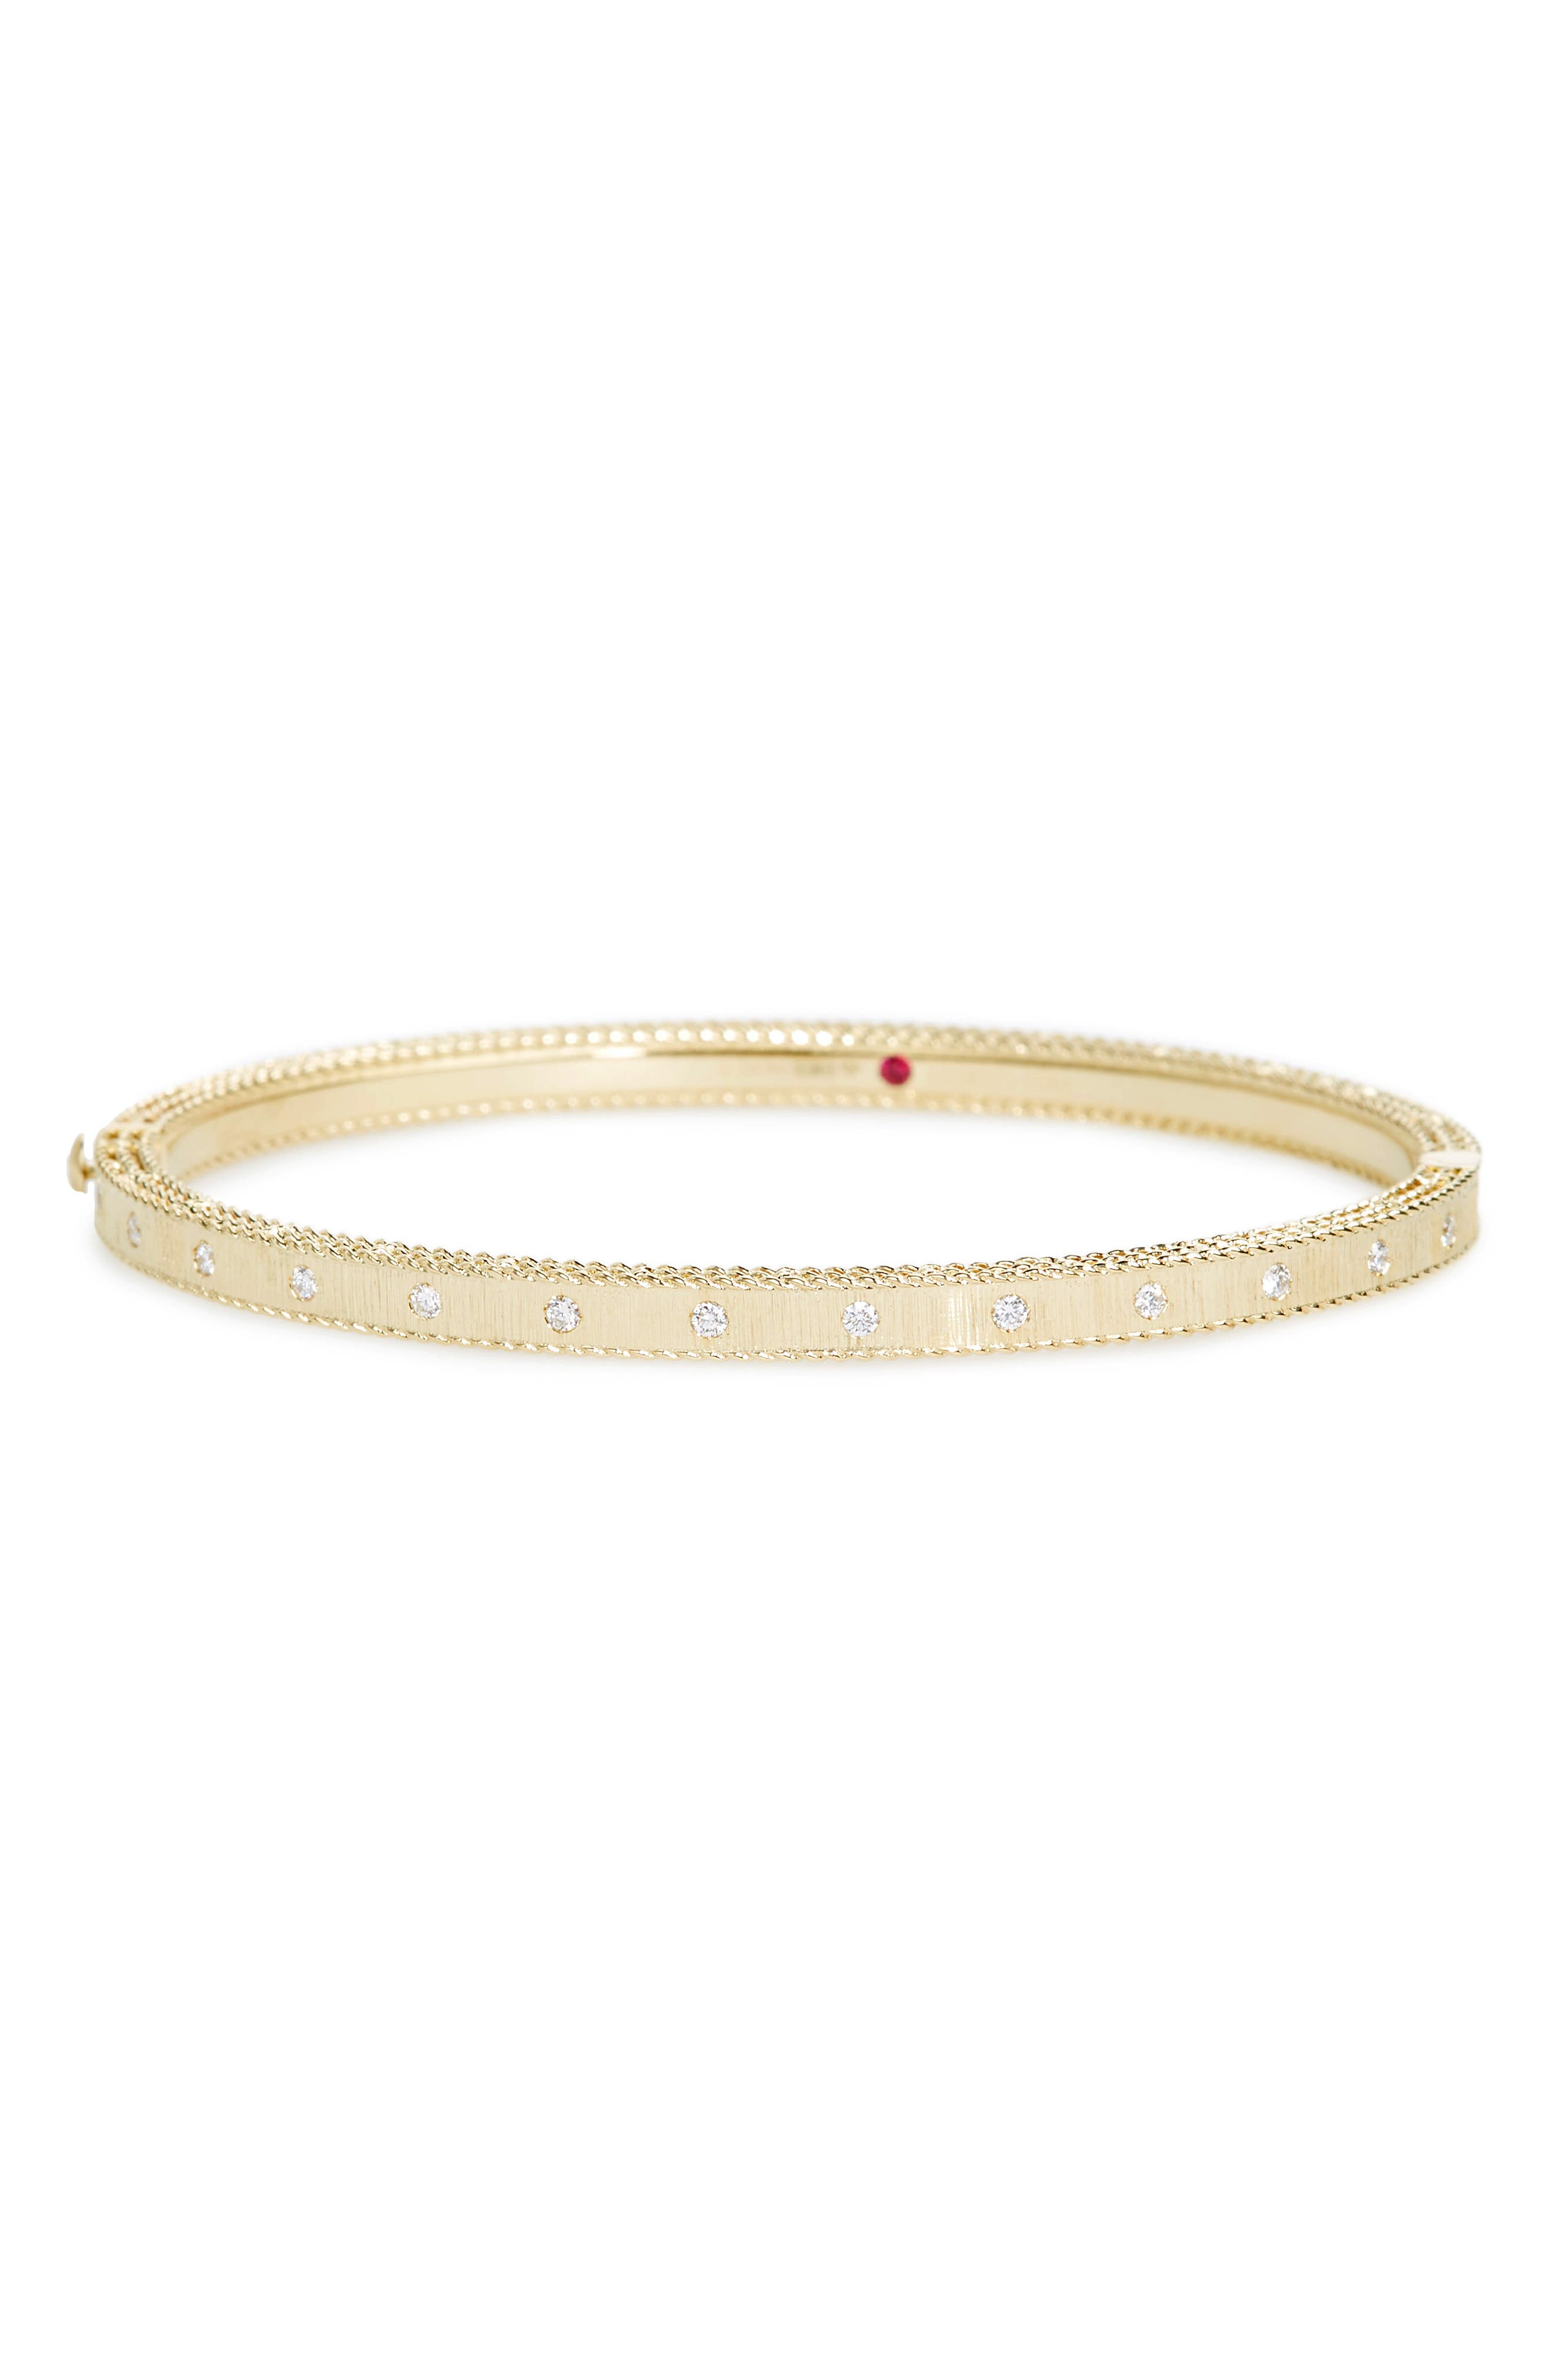 Roberto Coin PRINCESS DIAMOND BRACELET